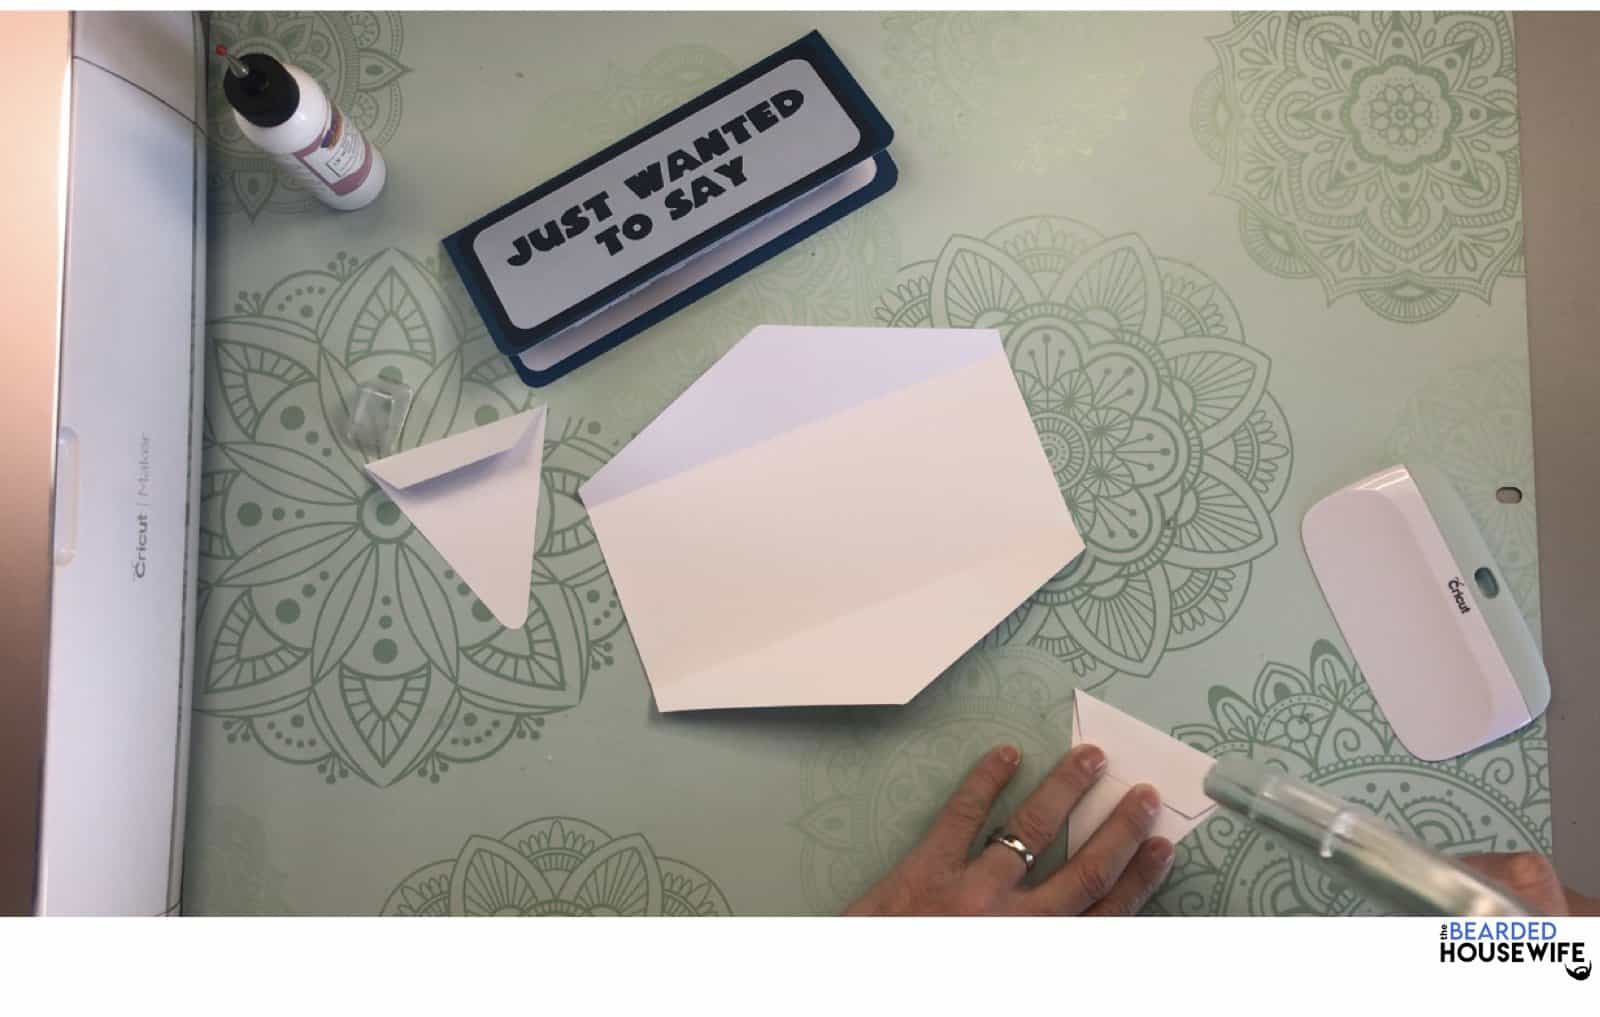 add glue or adhesive to the tabs on the side flaps